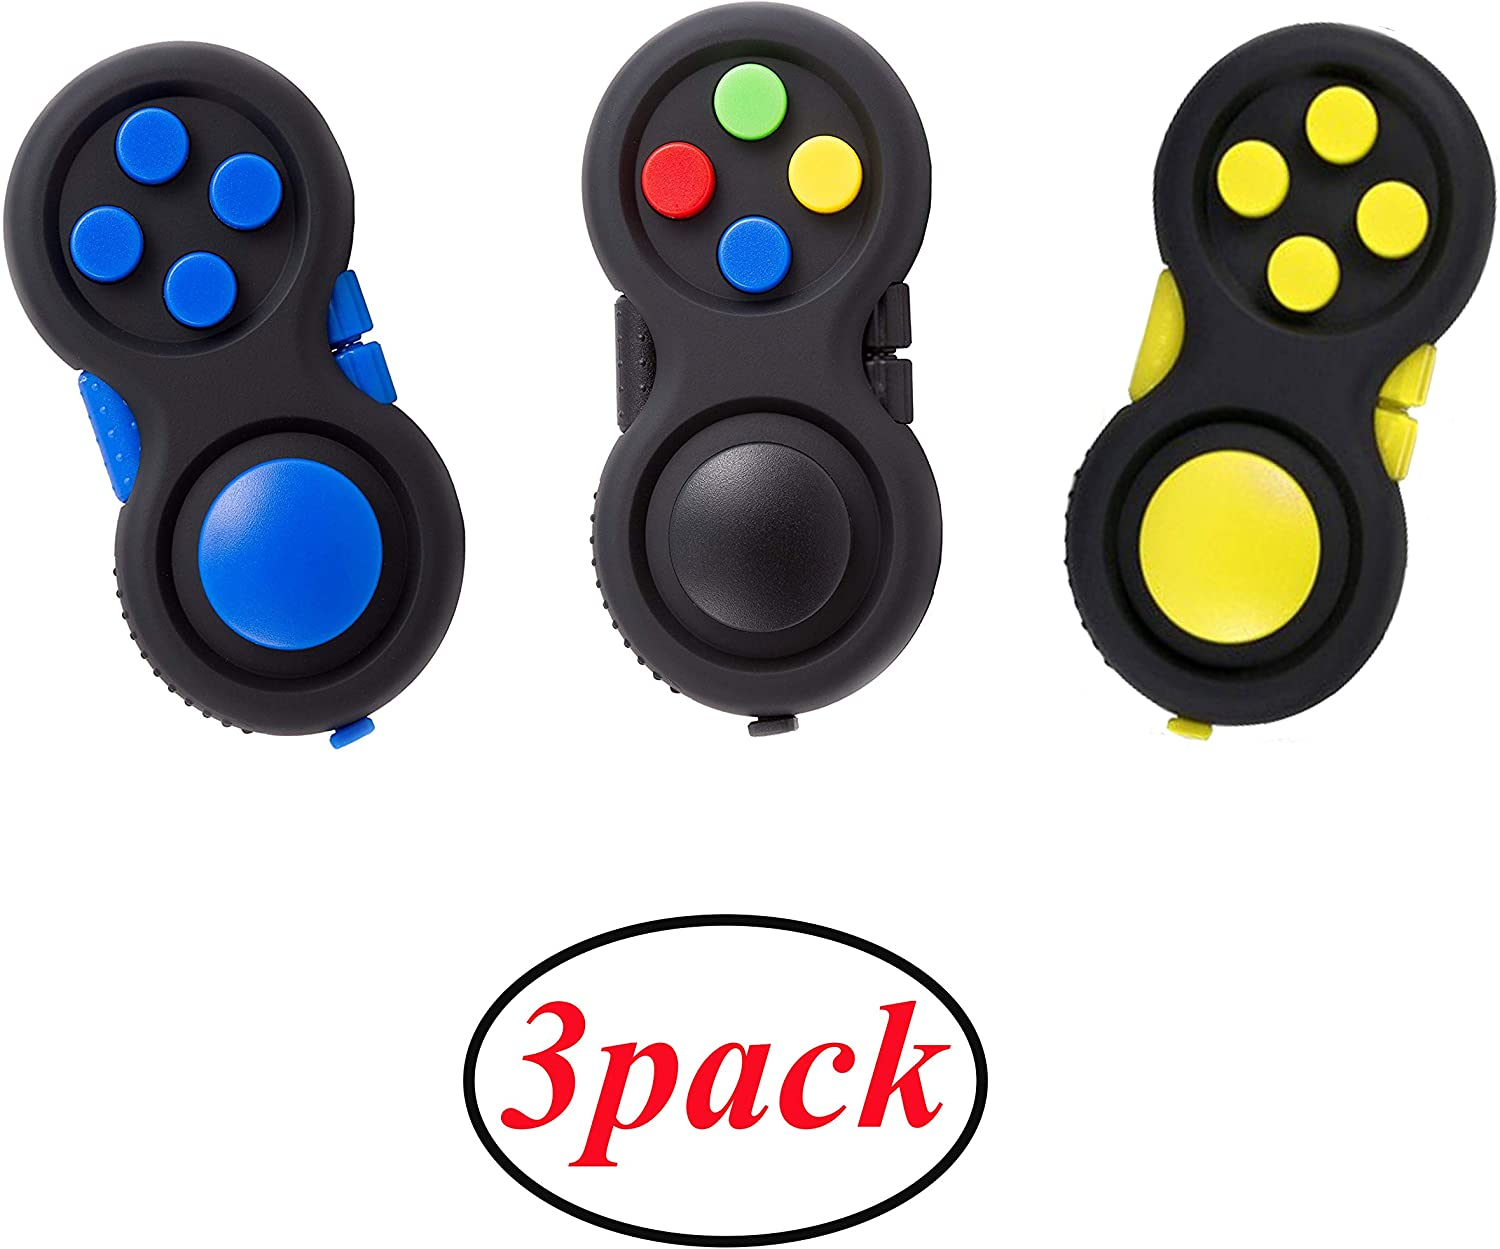 glacely 3pack Fidget Pad - 9 Fidget Features Perfect for Skin Picking, ADD, ADHD, Anxiety and Stress Relief Prime Ready and Shipped by DHgate(Colorful、Yellow、Blue